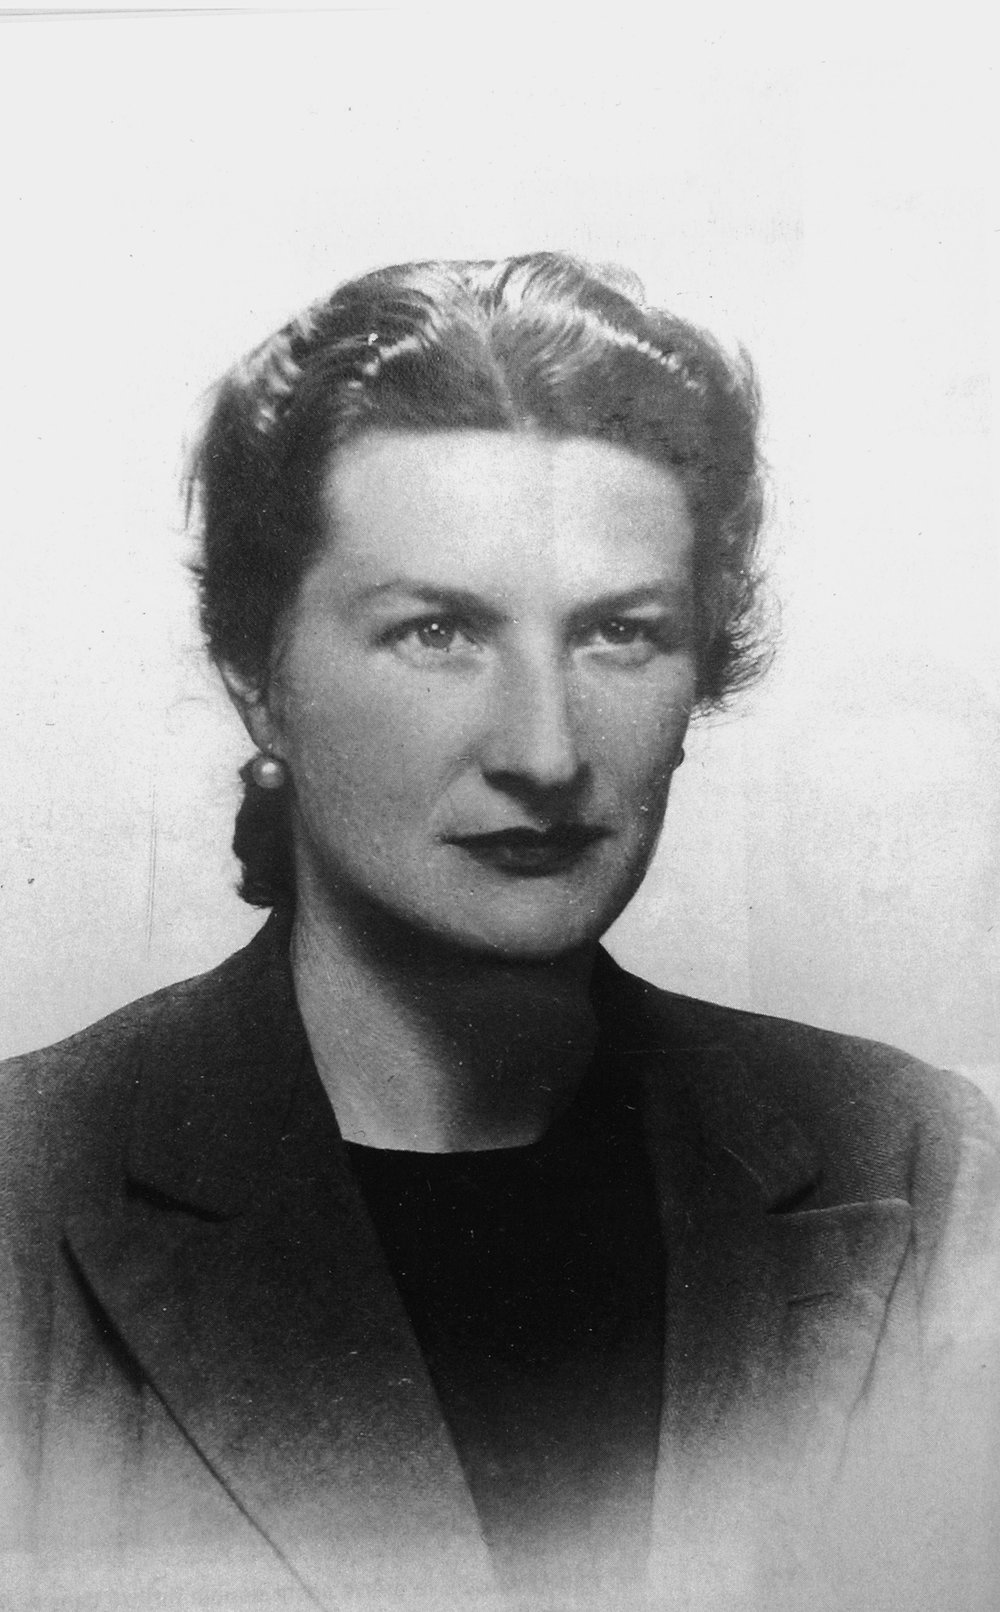 A Woman of No Importance: The Spy Who Helped Win WWII - Presented by Sonia Purnell